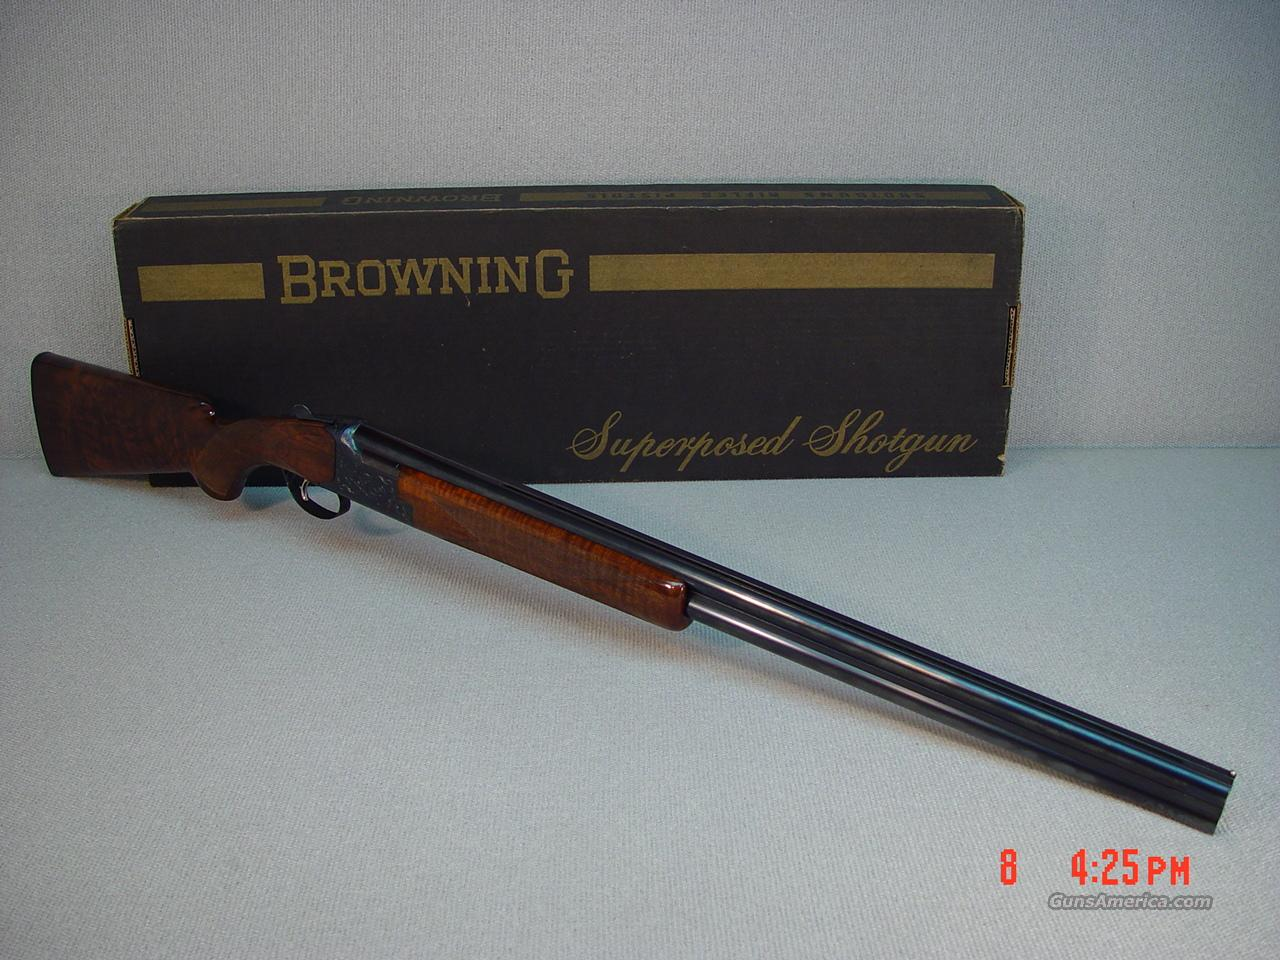 BROWNING B25 LIGHTNING CONTINENTAL GRADE 12GA  Guns > Shotguns > Browning Shotguns > Over Unders > Belgian Manufacture